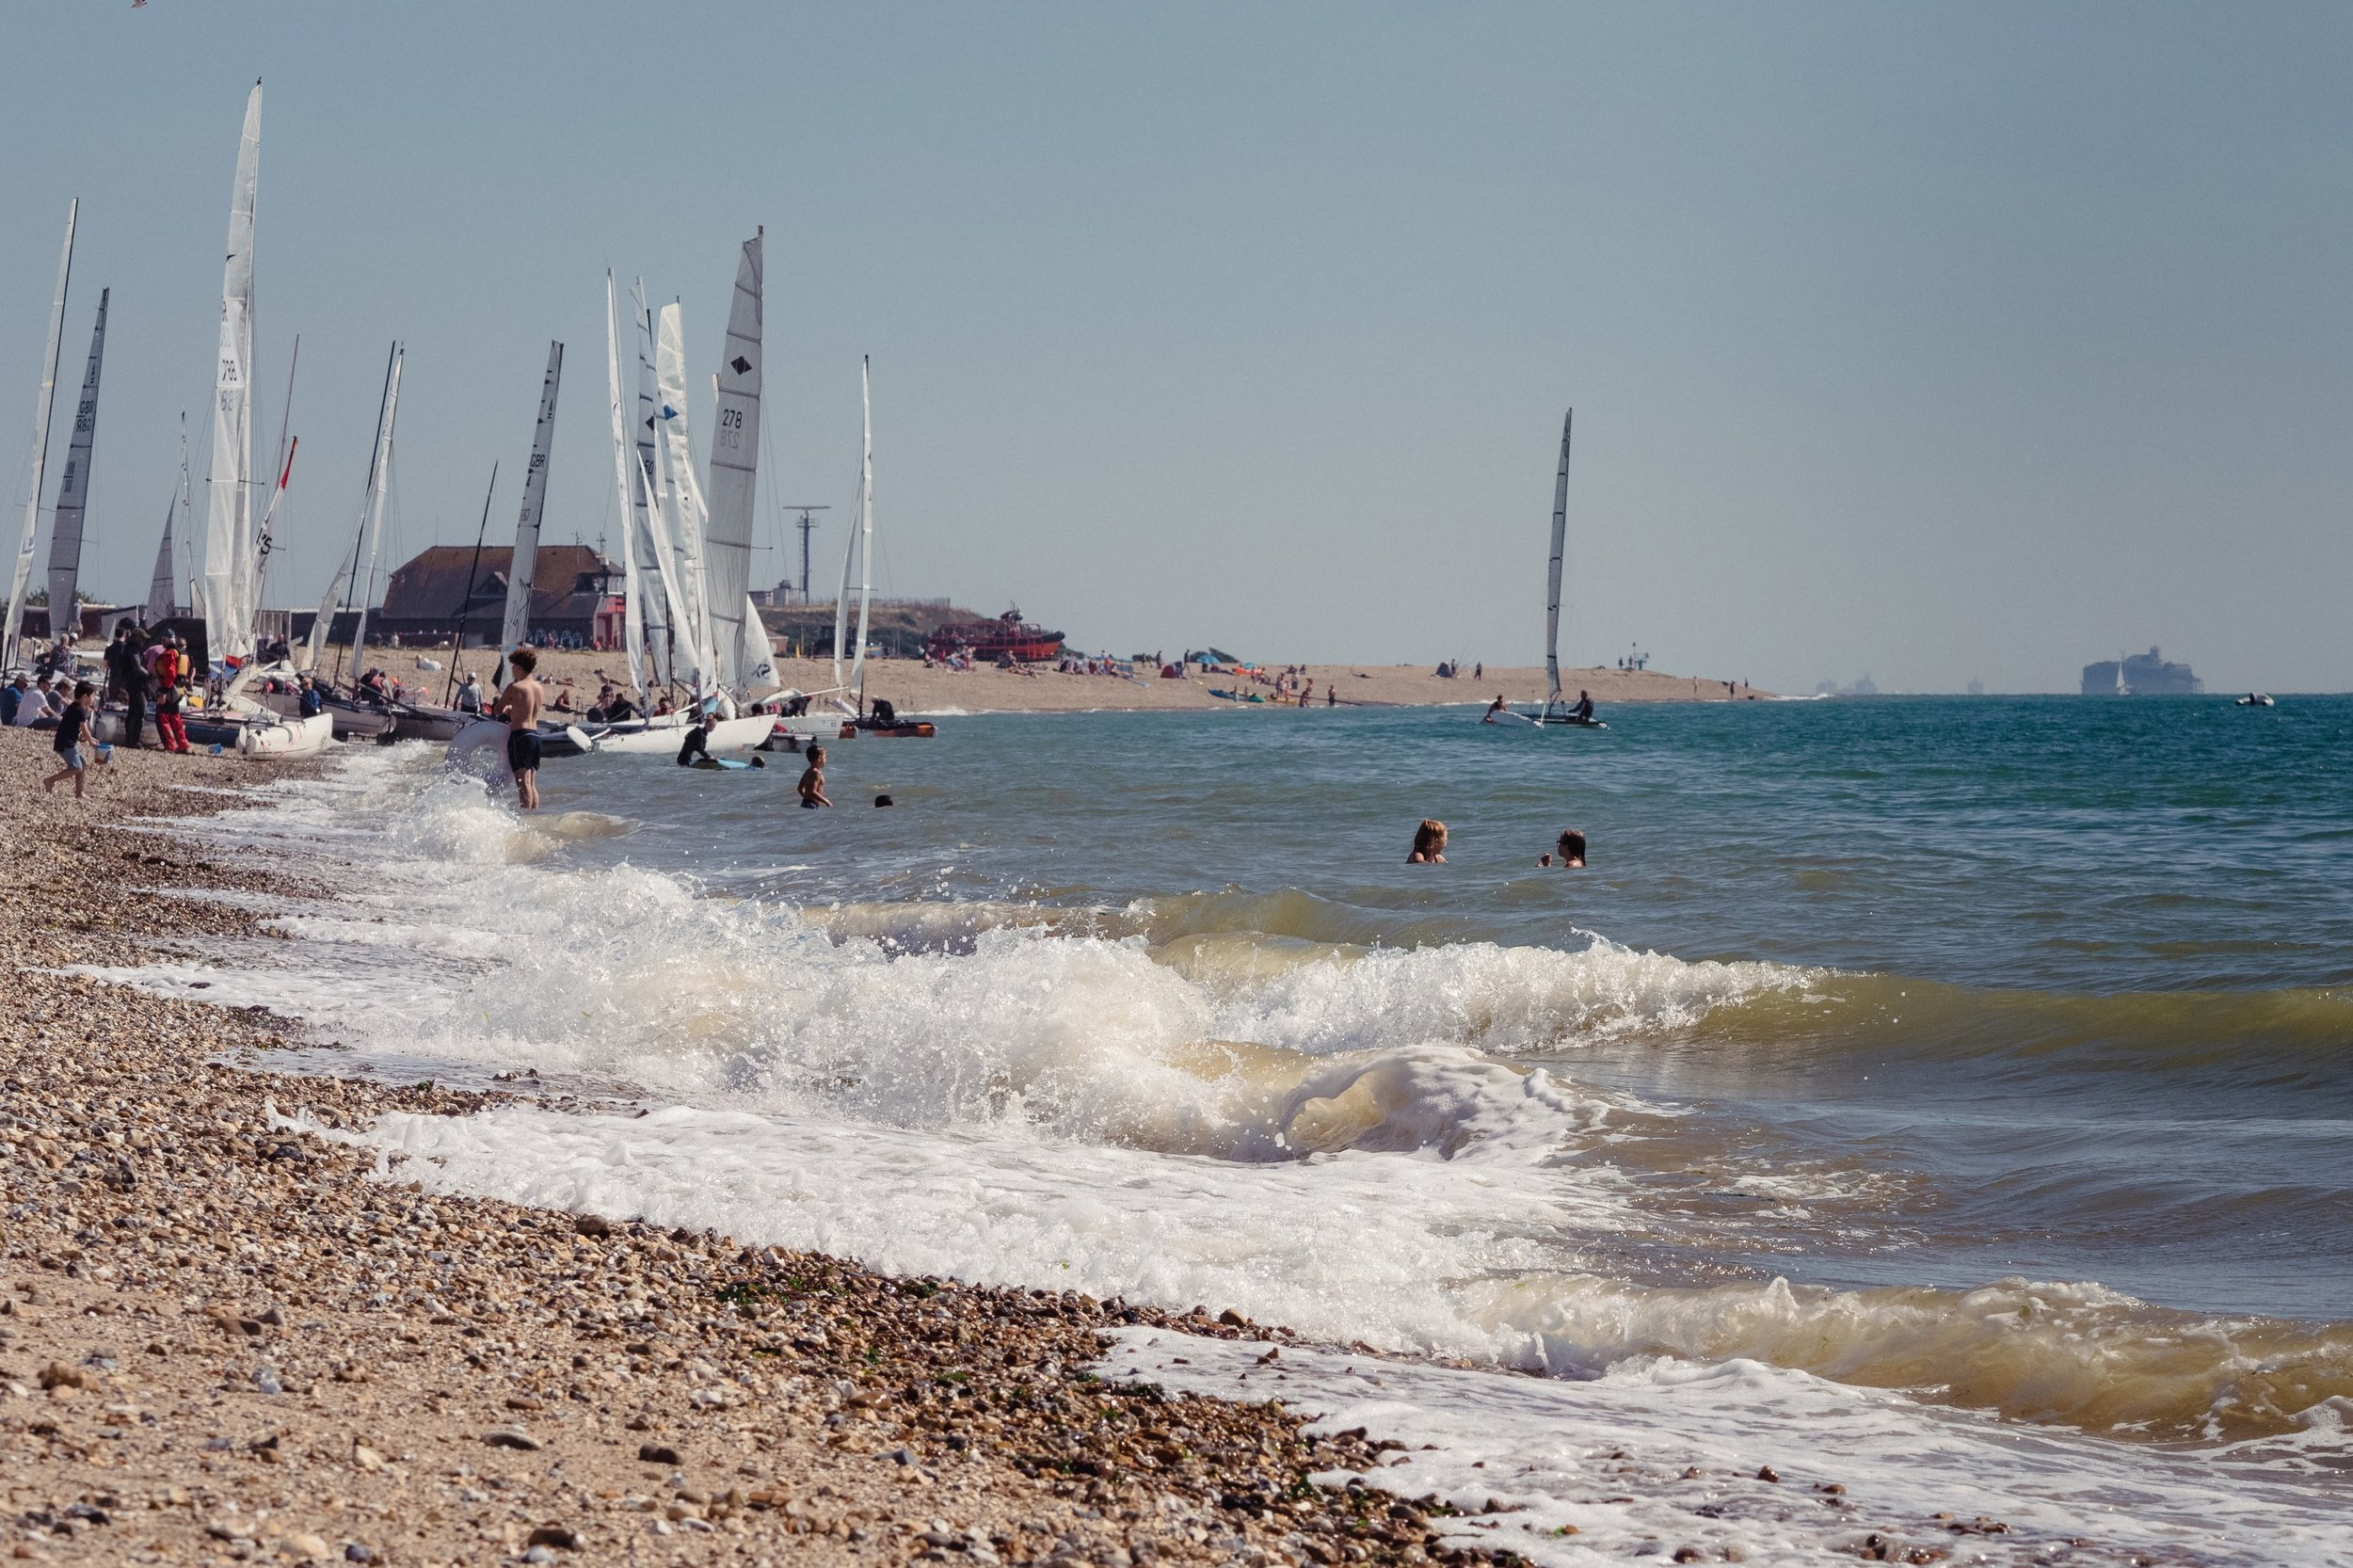 Families and sailors alike enjoy a late summer afternoon on Stokes Bay.